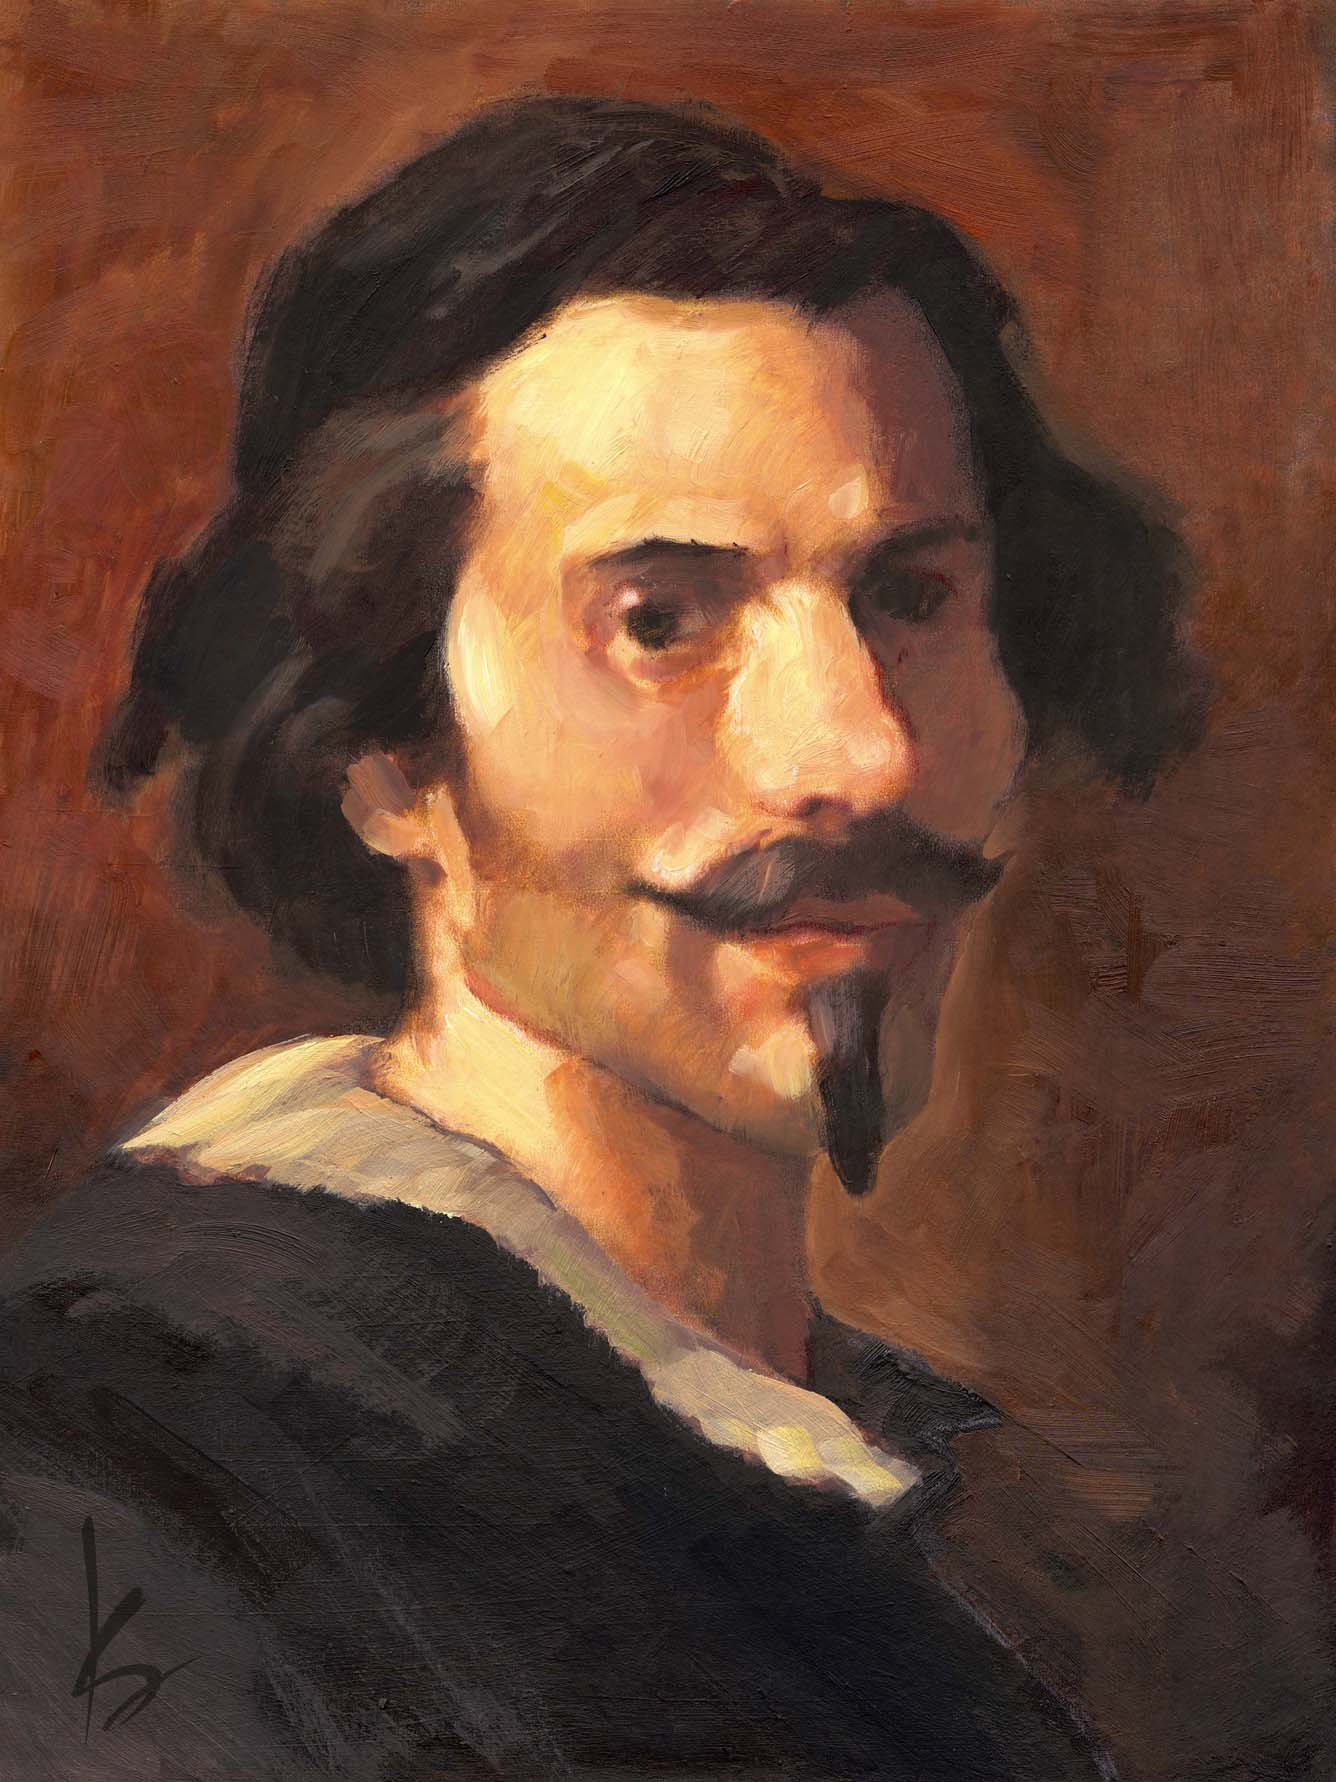 k sean sullivan art blog portraits of great artists gian lorenzo bernini one of the greatest sculptors ever 1598 1680